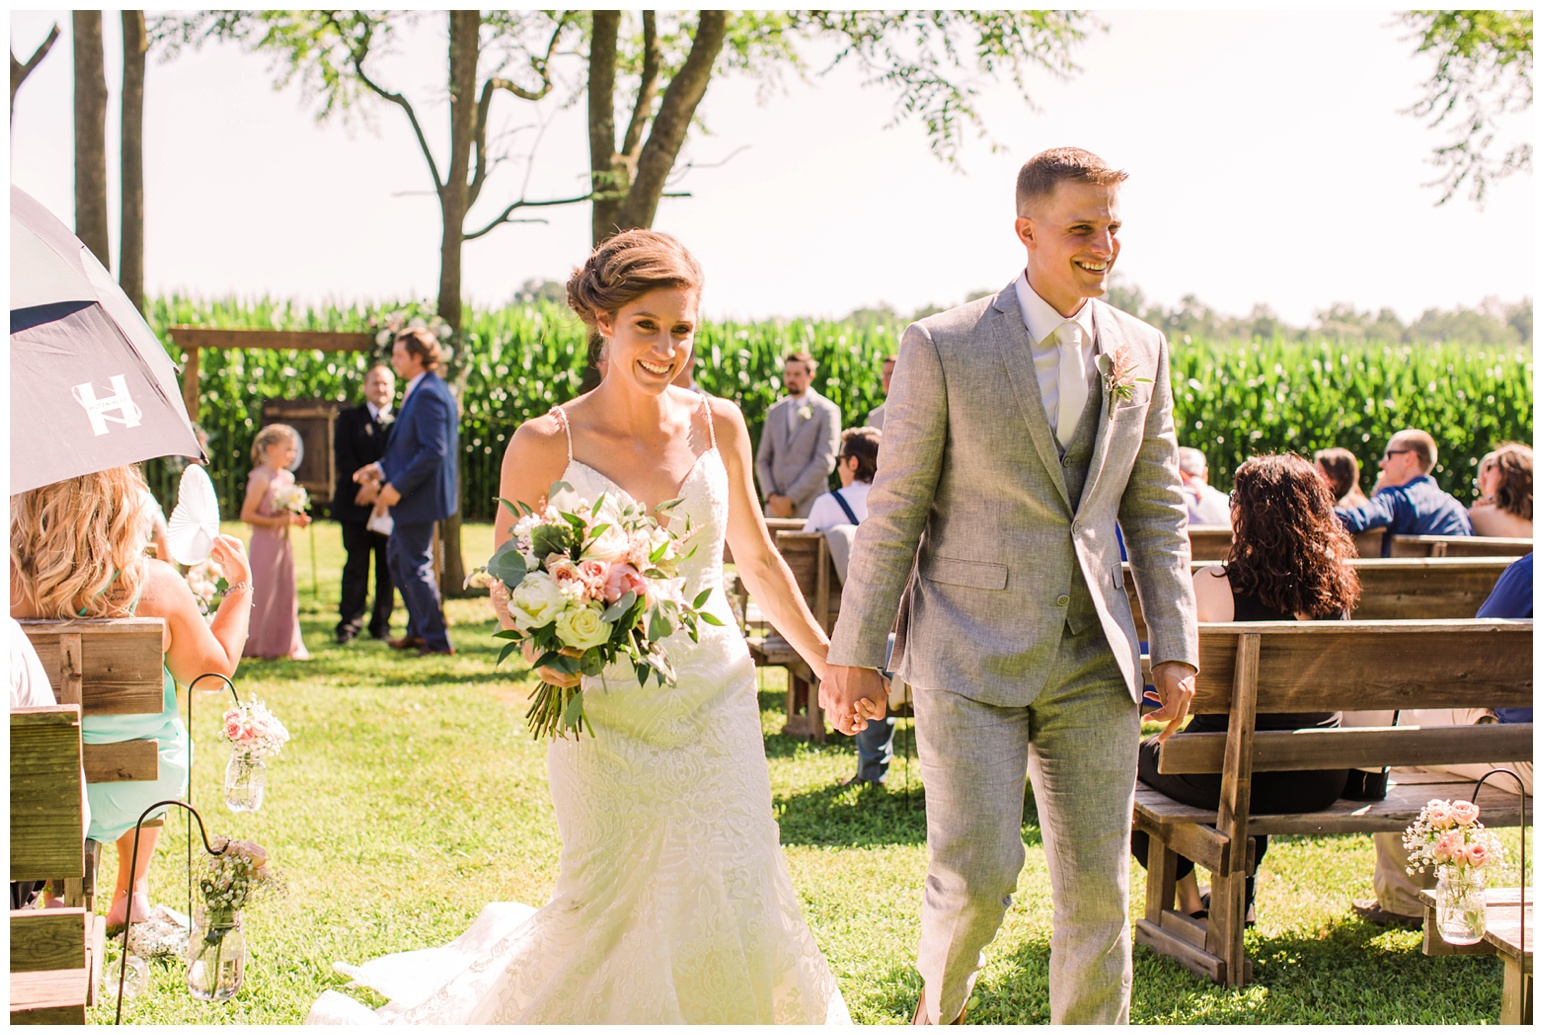 outdoor wedding reception at worsell manor - summer wedding - bride and groom walking down the aisle just married - ceremony photo in maryland